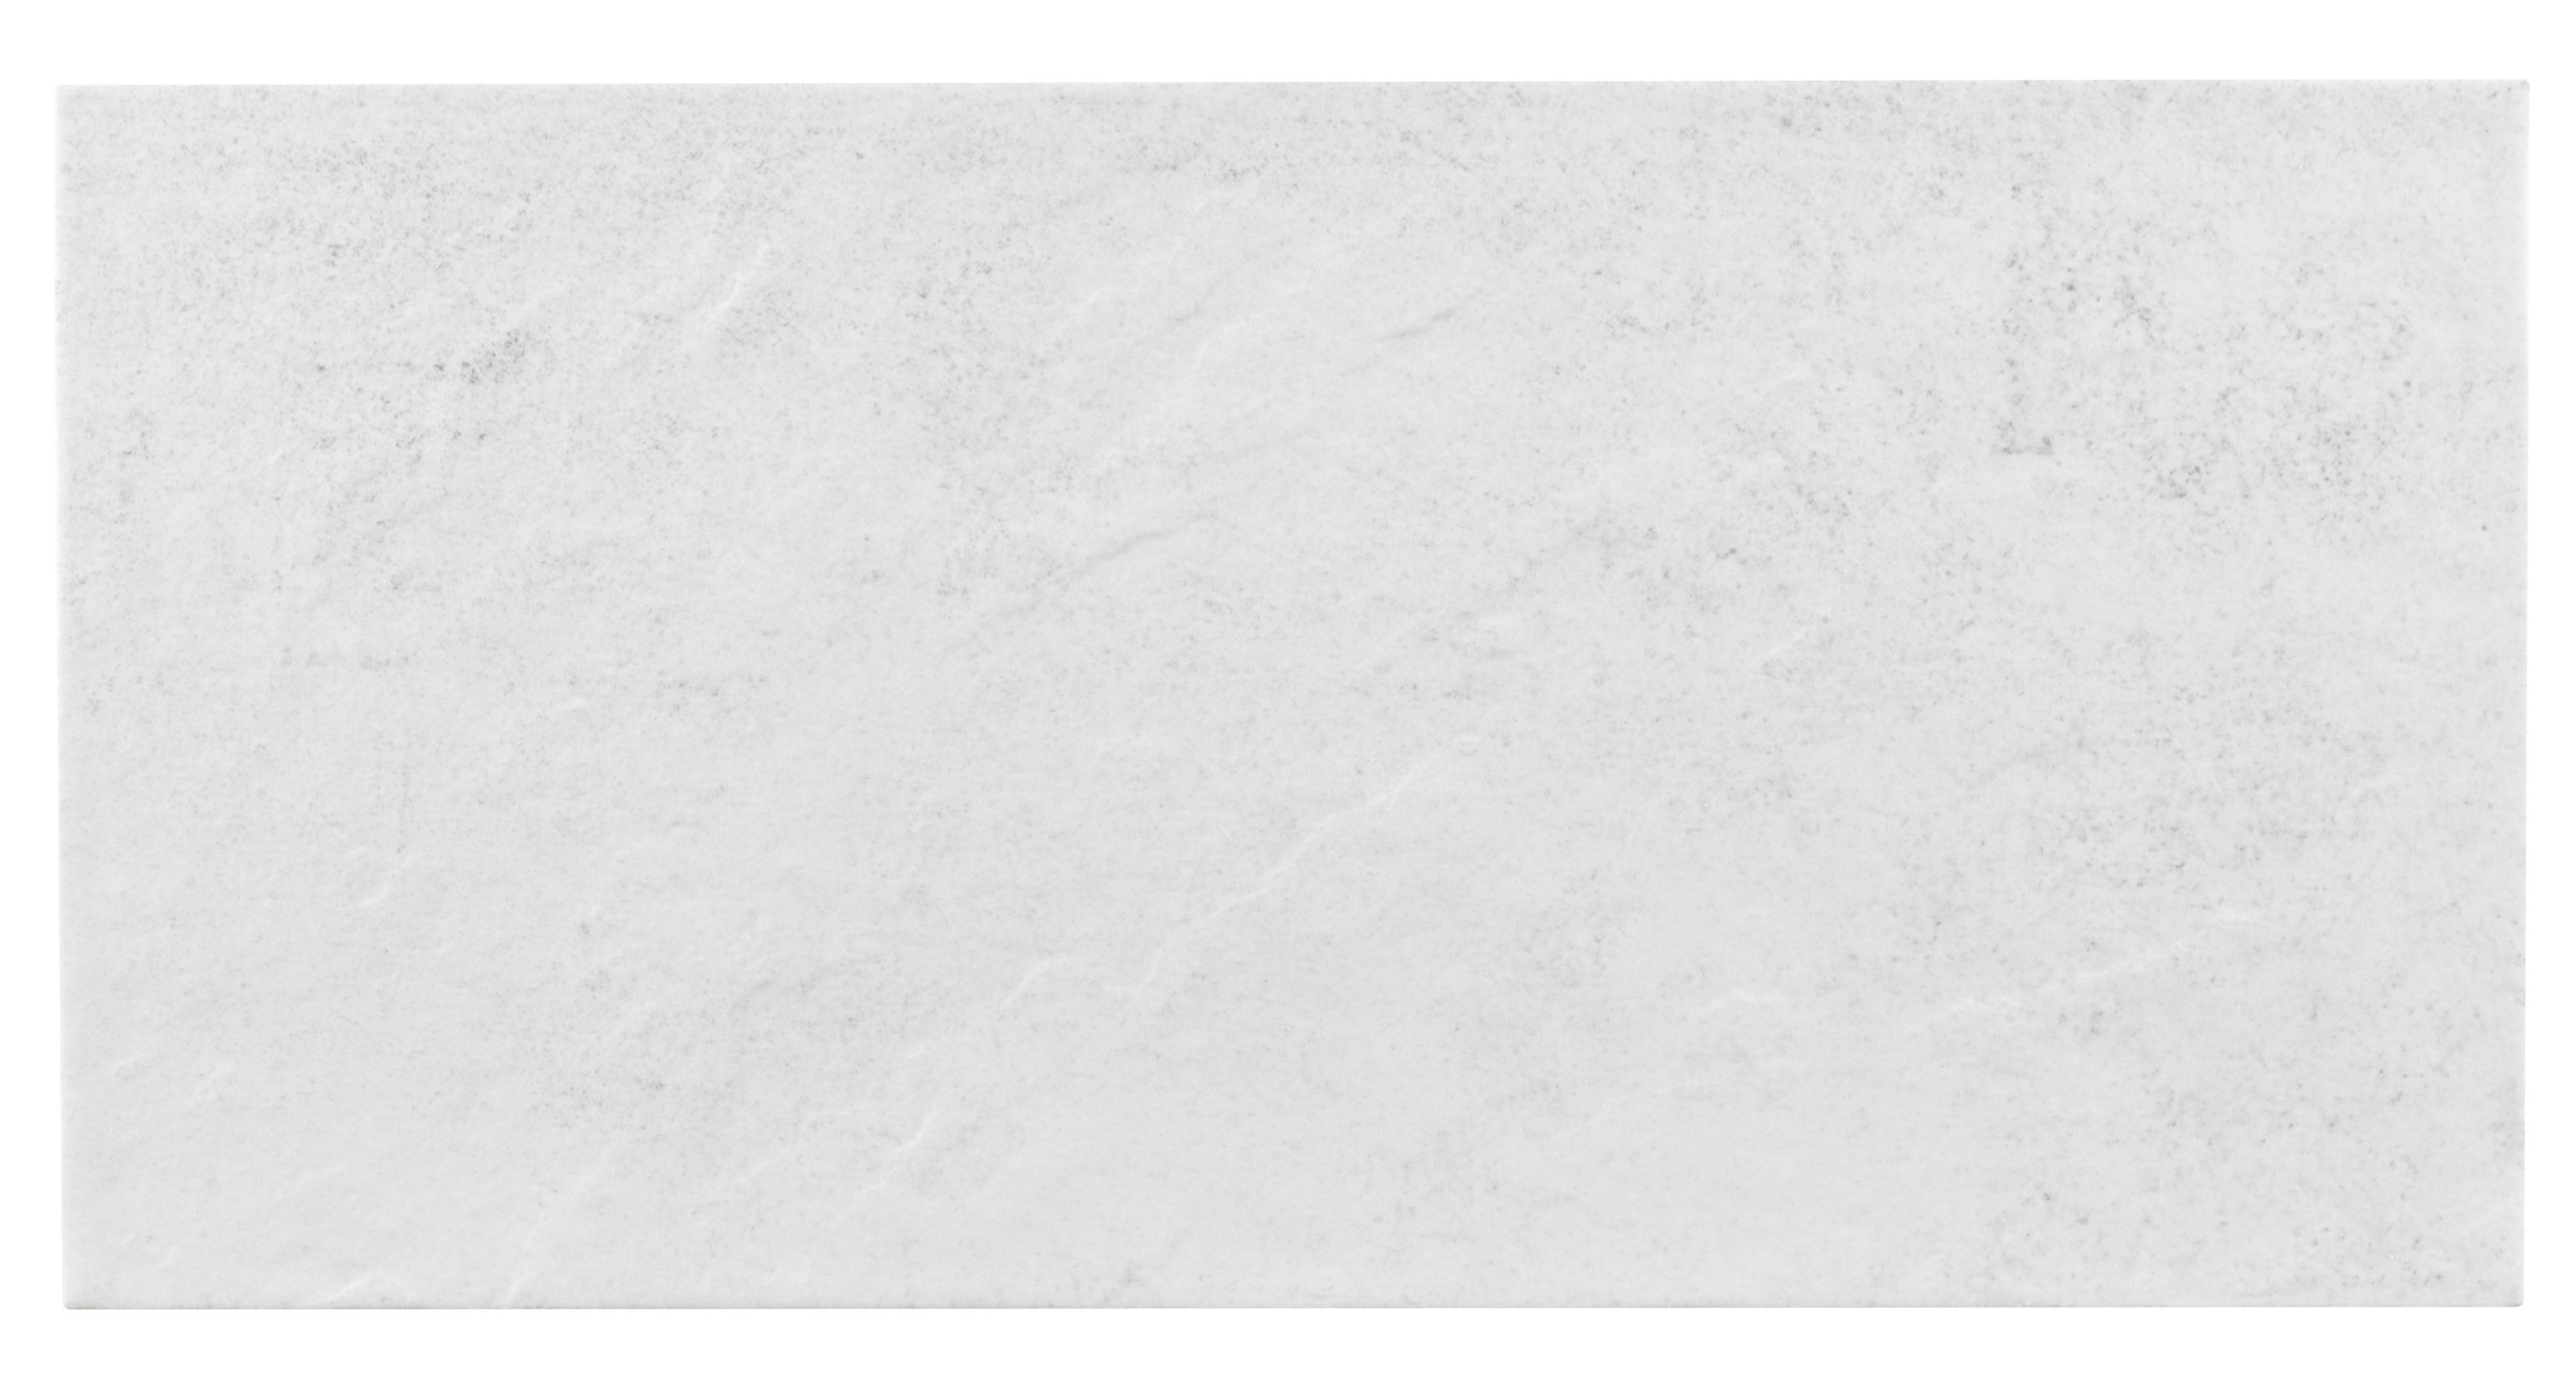 Lofthouse Whitewash Plaster Effect Ceramic Wall Amp Floor Tile Pack Of 6 L 598mm W 298mm